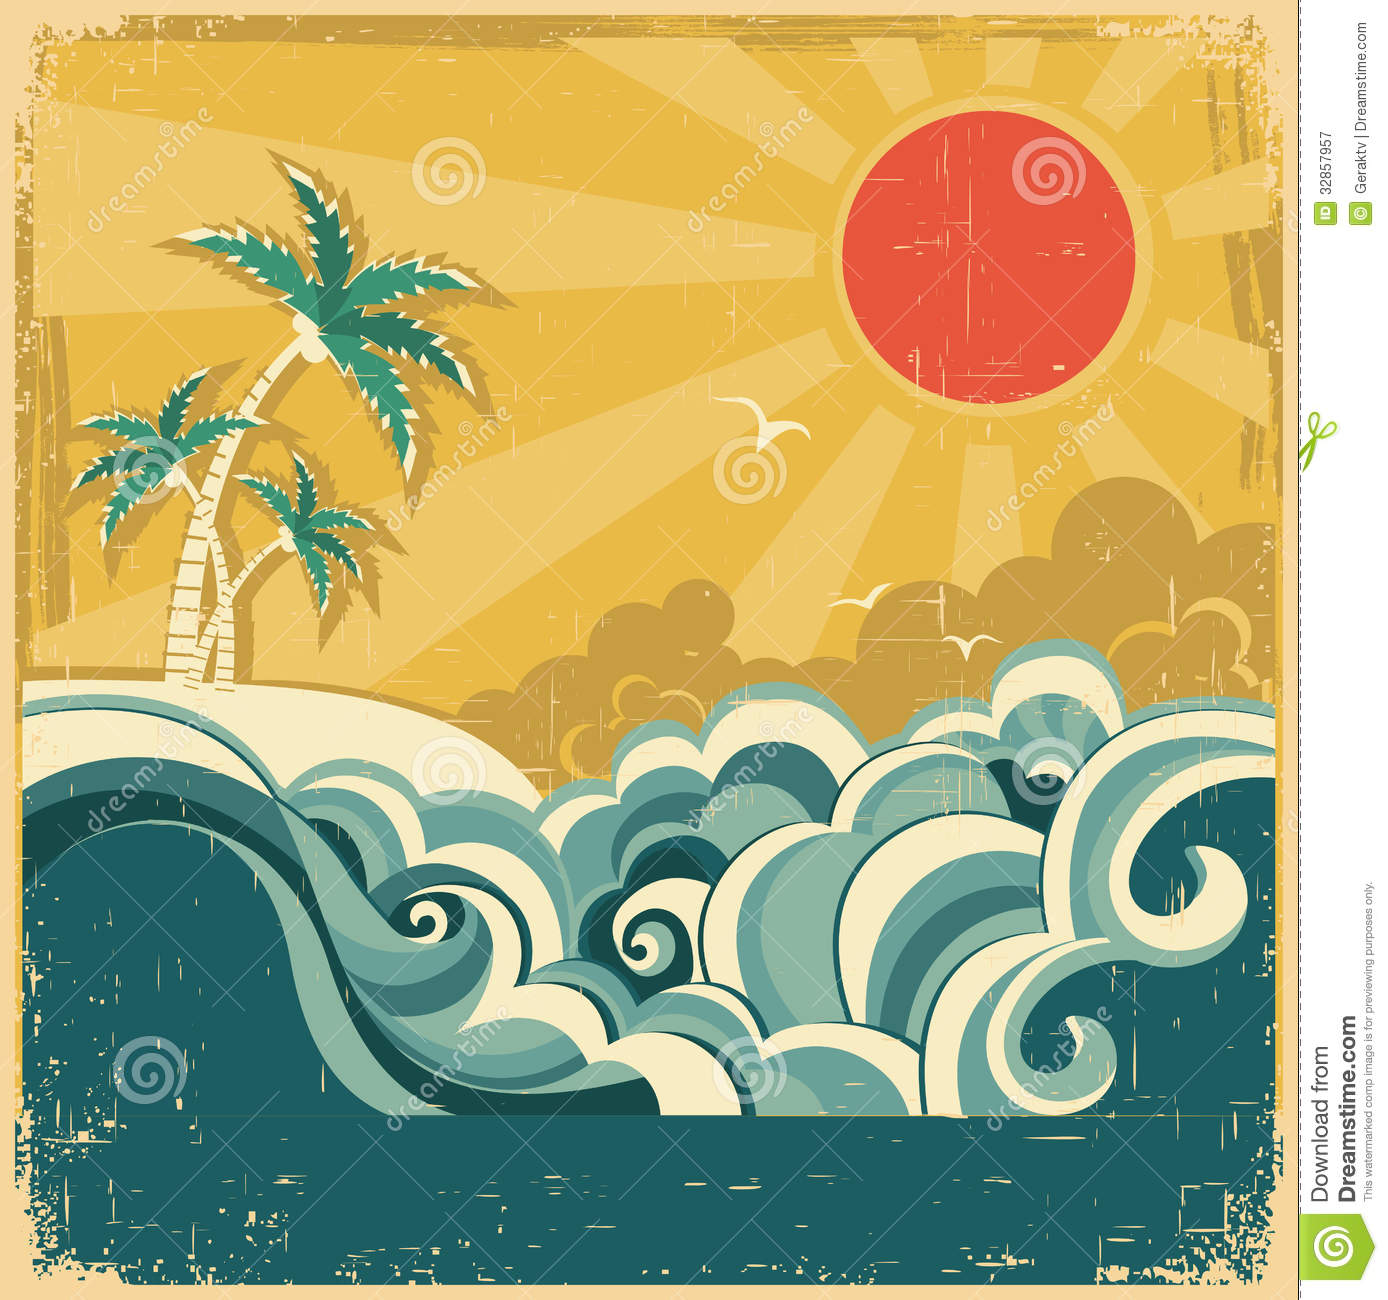 Poster design background - Poster Background Design Vector Free Download Background Nature Poster Seascape Tropical Vector